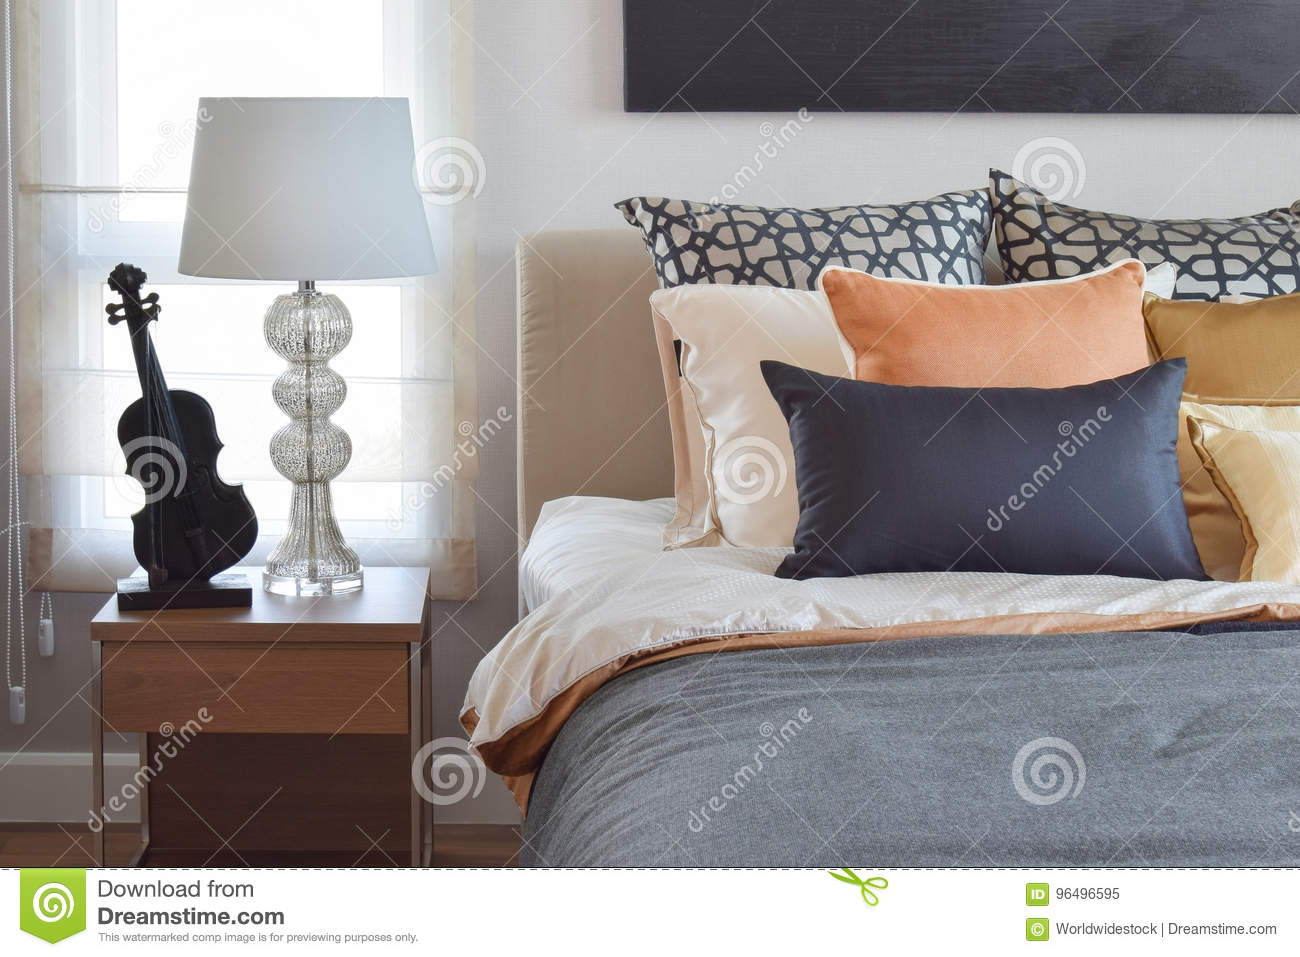 Bed Table Lamps Modern Bedroom Interior With Orange And Gold Pillows On Bed And